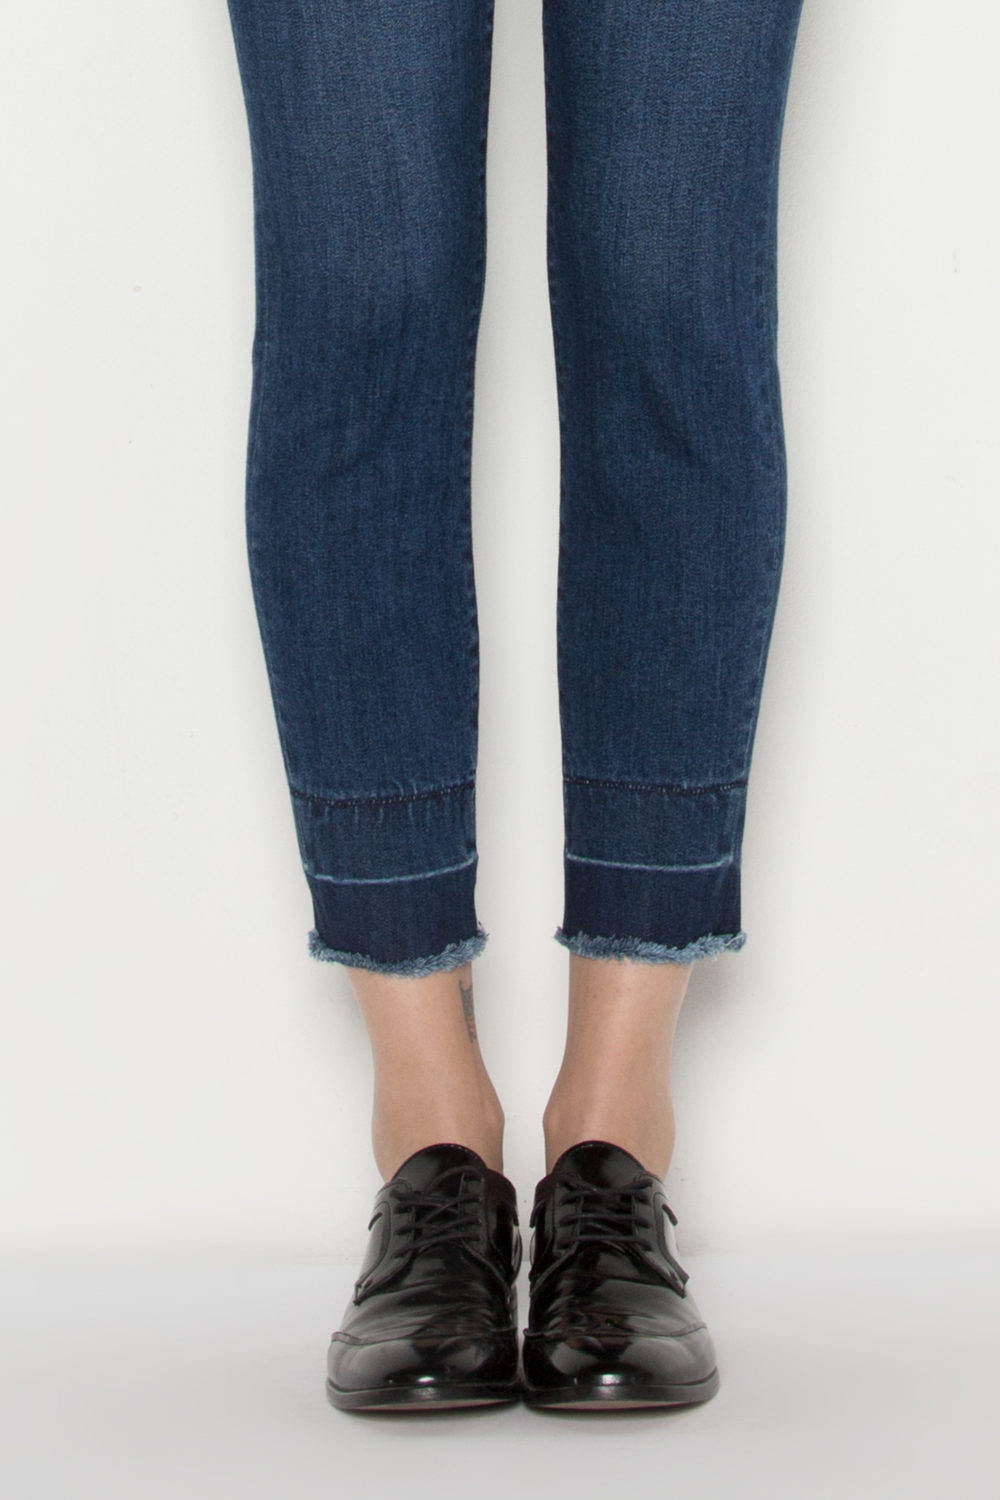 AVA CROP SKINNY IN MERCER